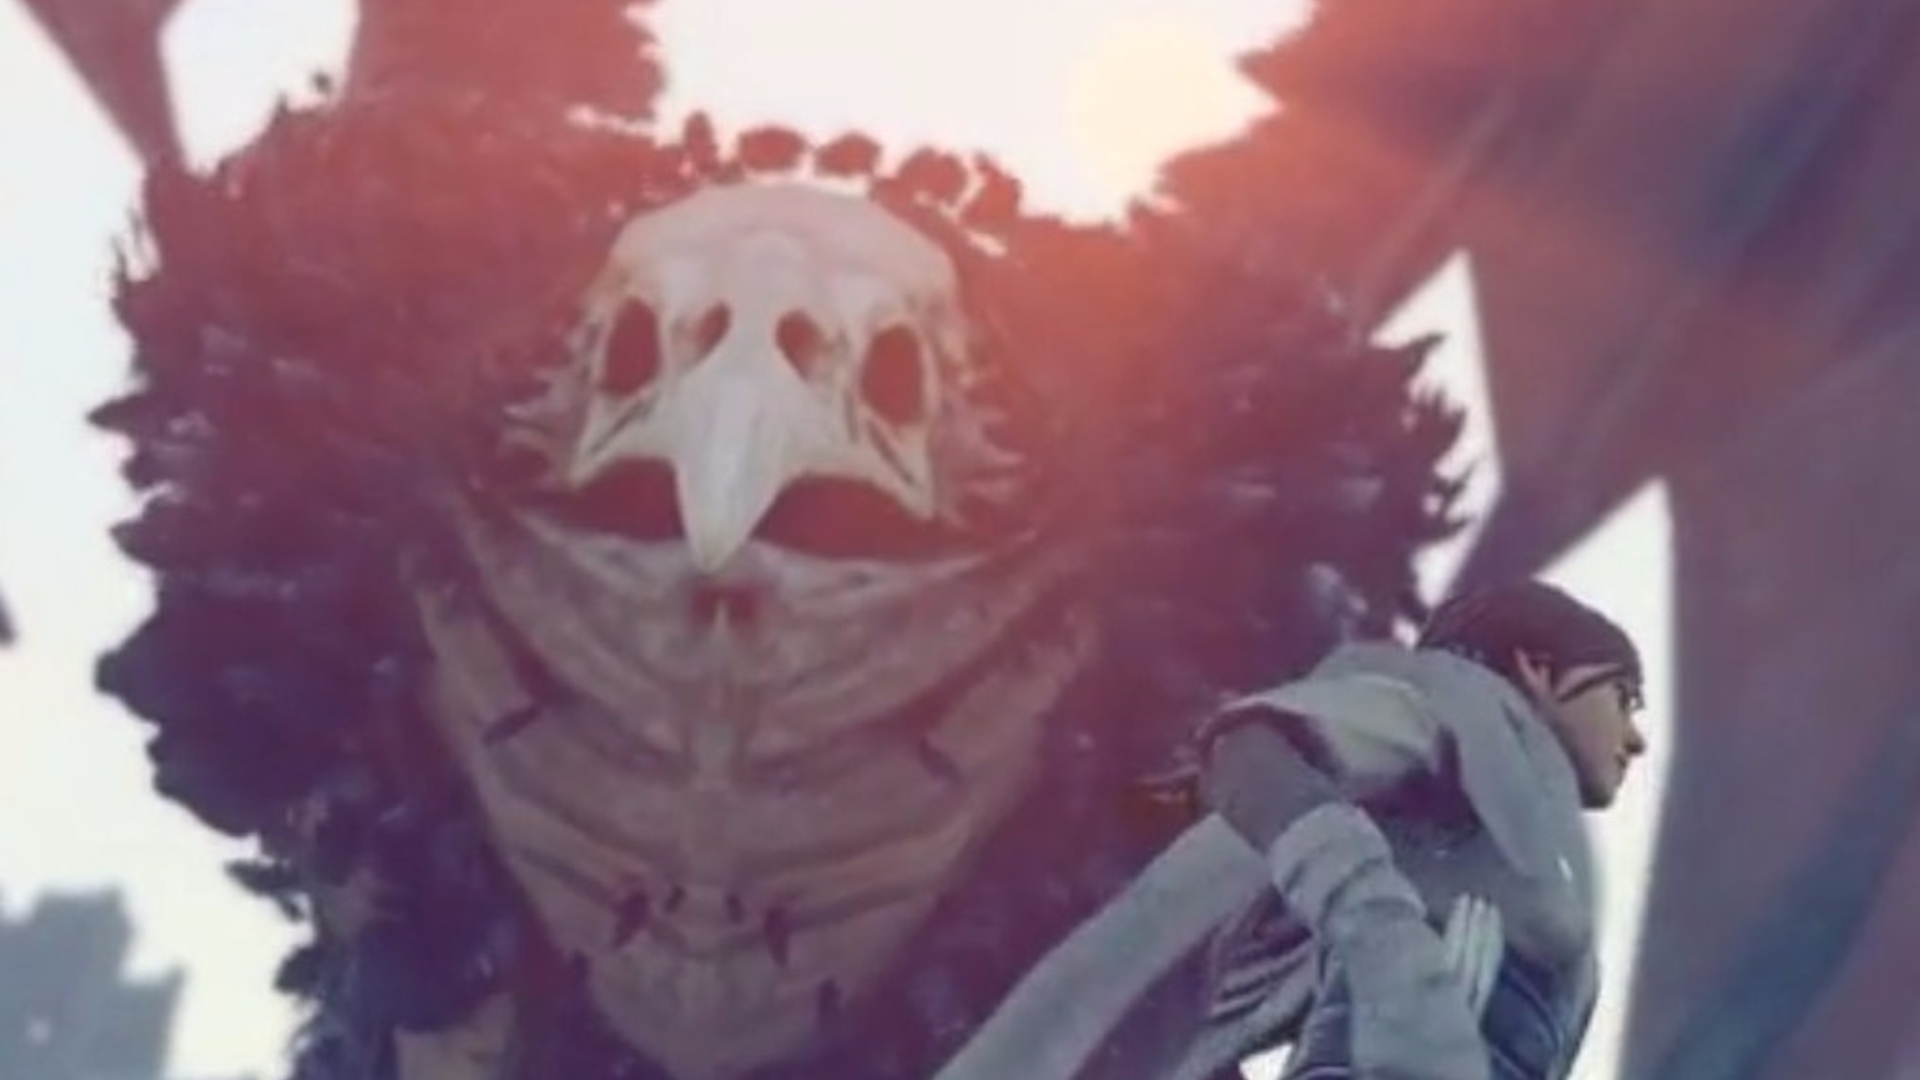 Prey for the Gods reimagines Shadow of the Colossus as a wintry survival game